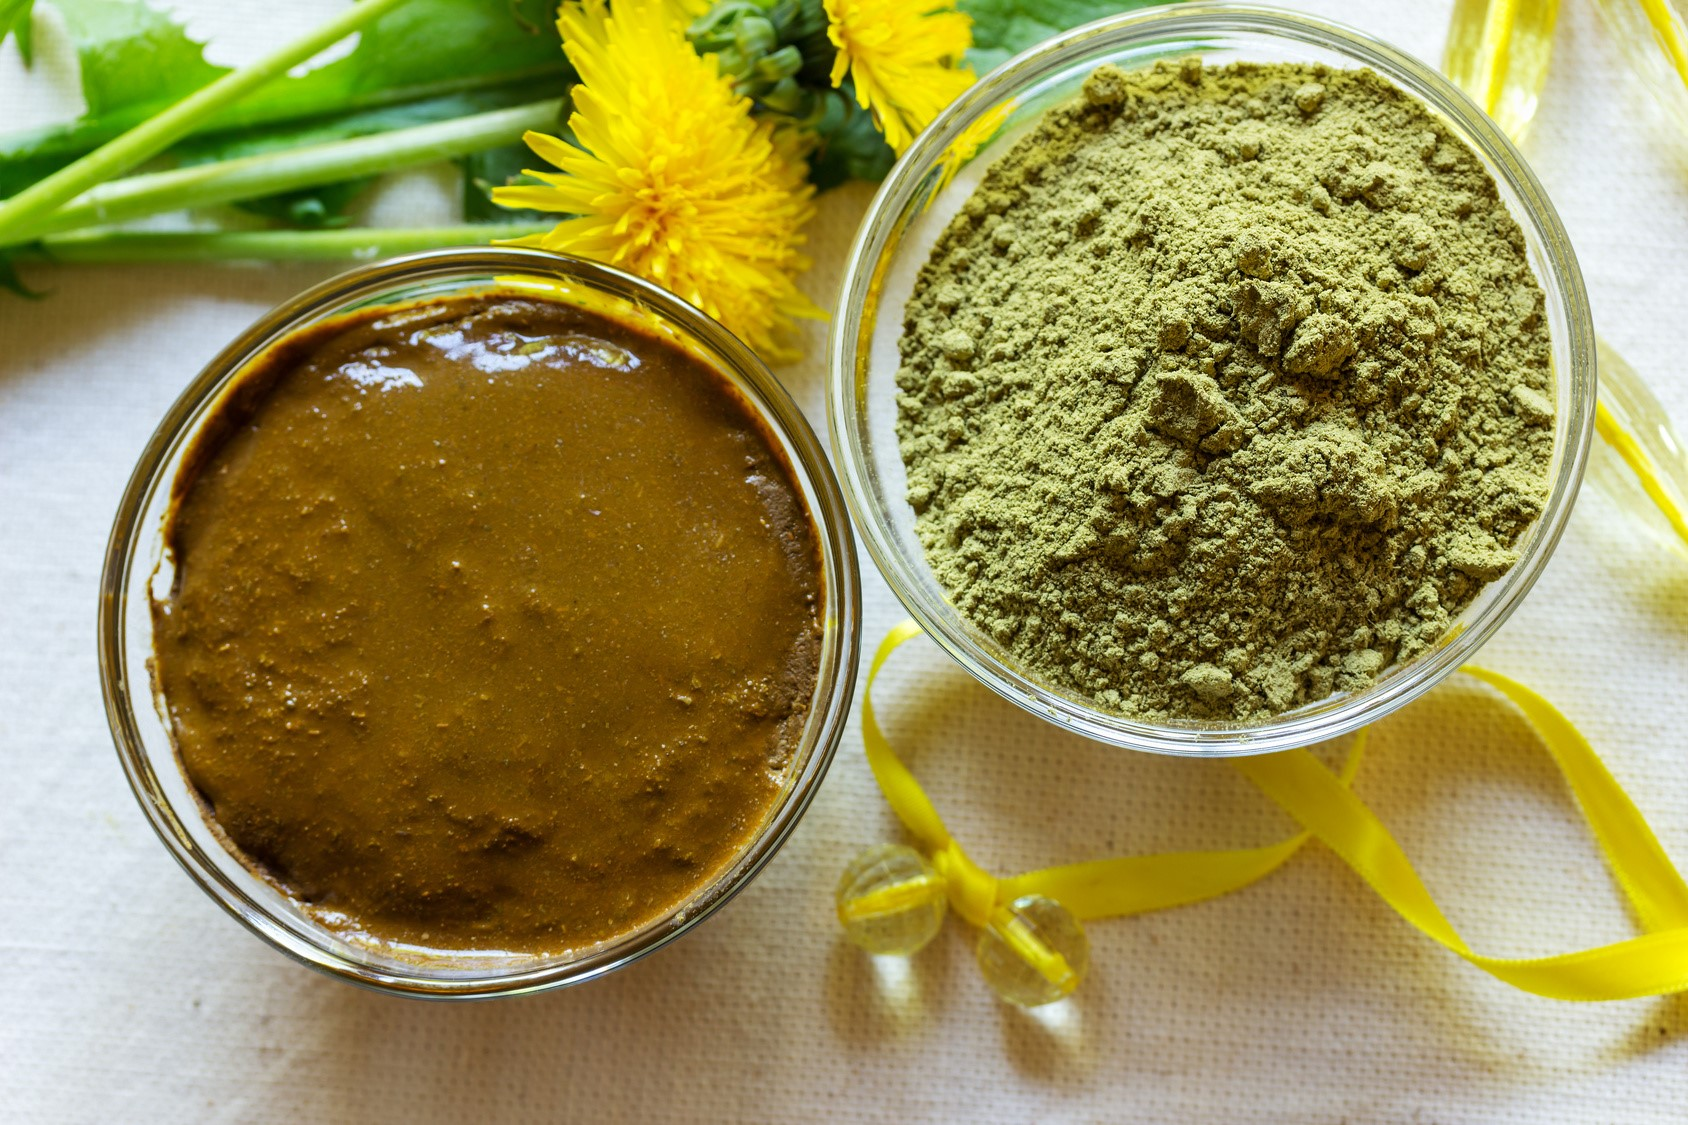 This photo is of henna paste and henna powder.  Henna, known as Lasownia inermis, is a cable Candida cure that you can use at home.  Henna is also a popular dye; so be careful not to stain anything while you use it to combat a yeast infection!